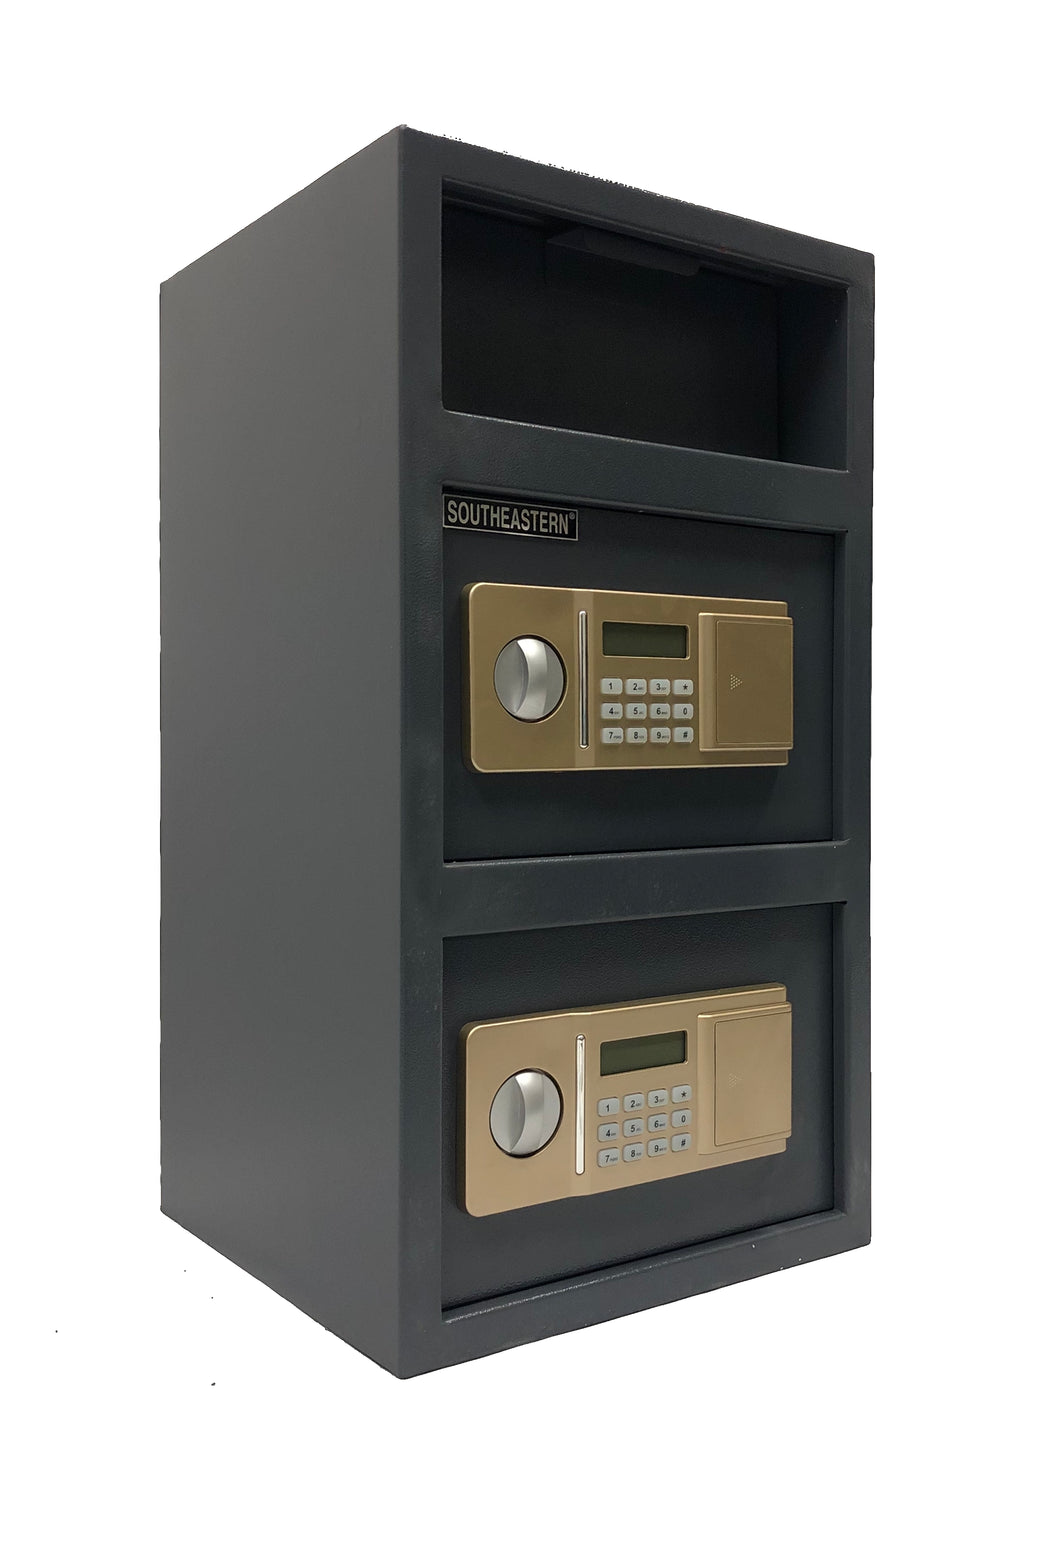 SOUTHEASTERN F2614EEVN Double Door Money Drop Depository Safe with Quick Access Electronic Lock & Back up Key